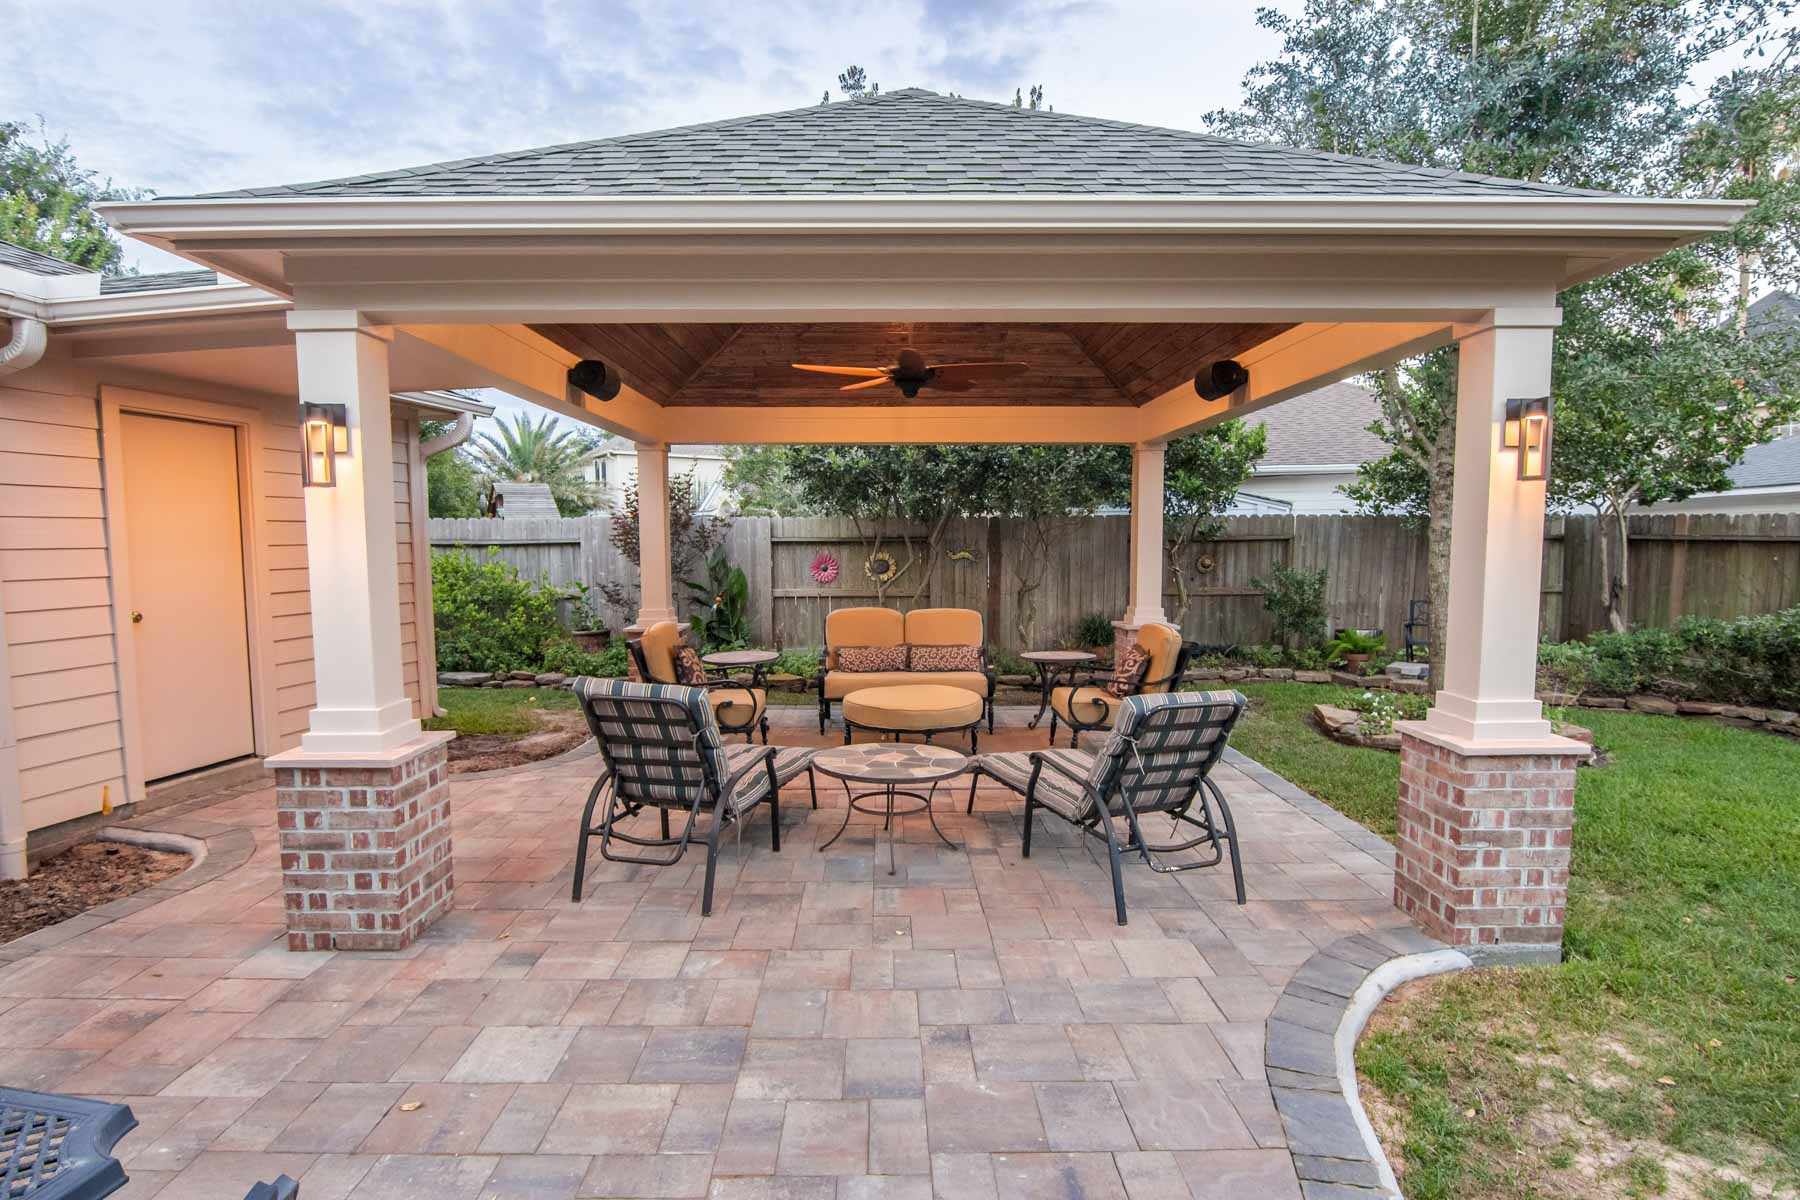 Hip Roof Patio Cover in Copperfield - HHI Patio Covers on Patio Cover Ideas Images id=59749